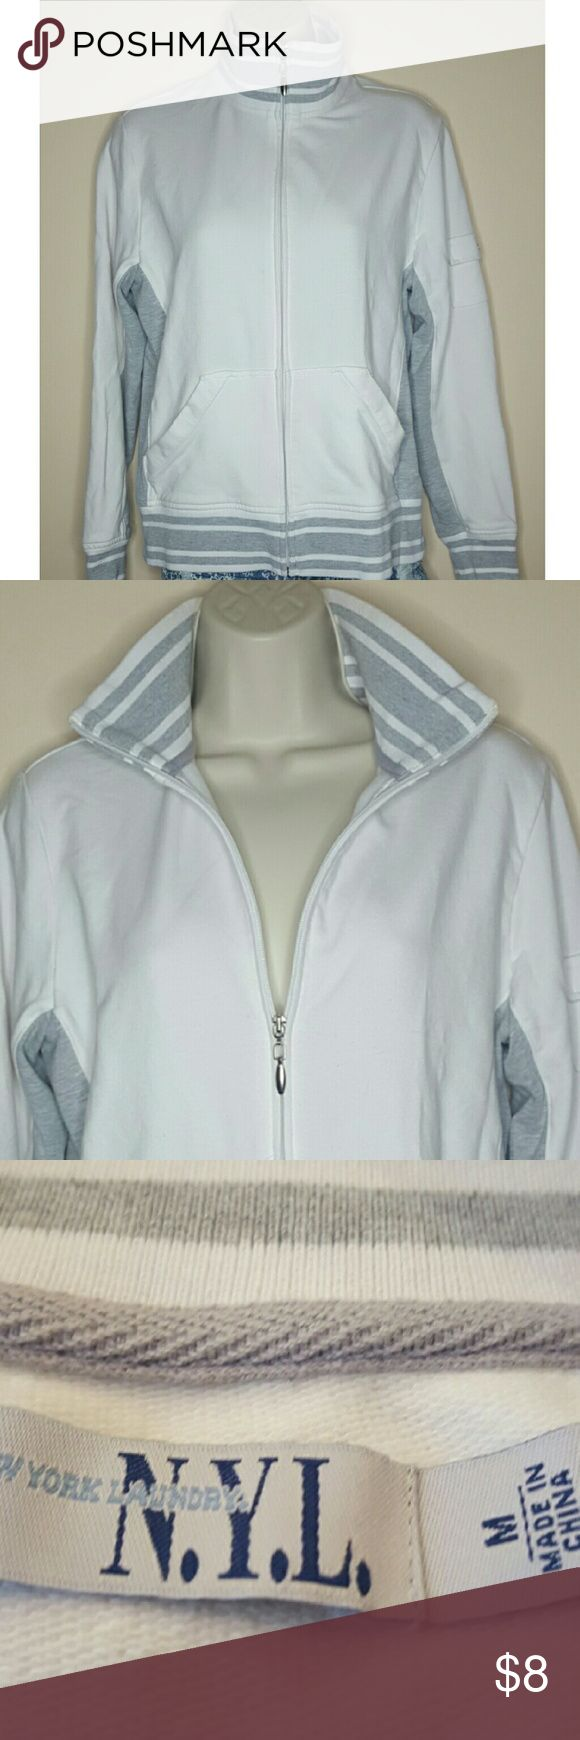 N.Y.L. White and Gray Athletic Jacket Women's New York Laundry white and gray athletic track jacket. Size medium, good condition! New York Laundry Jackets & Coats Utility Jackets